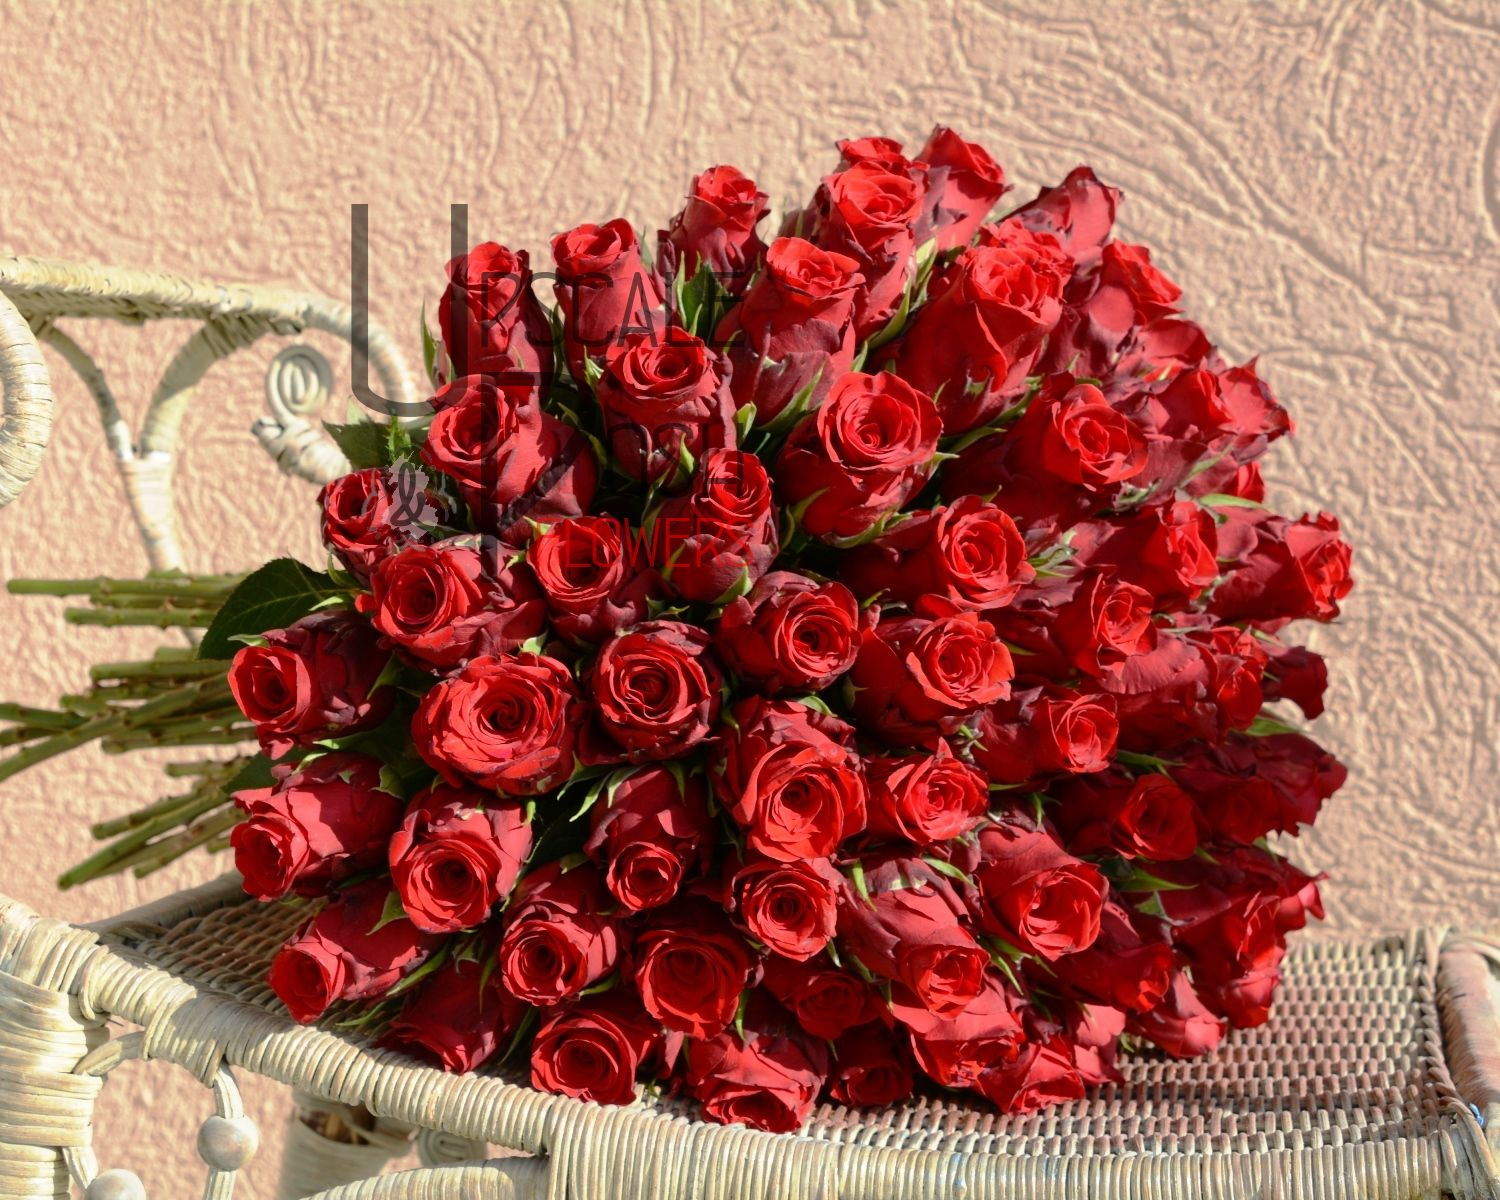 Red rose bouquet upscale and posh flowers aed 49000 aed 19500 izmirmasajfo